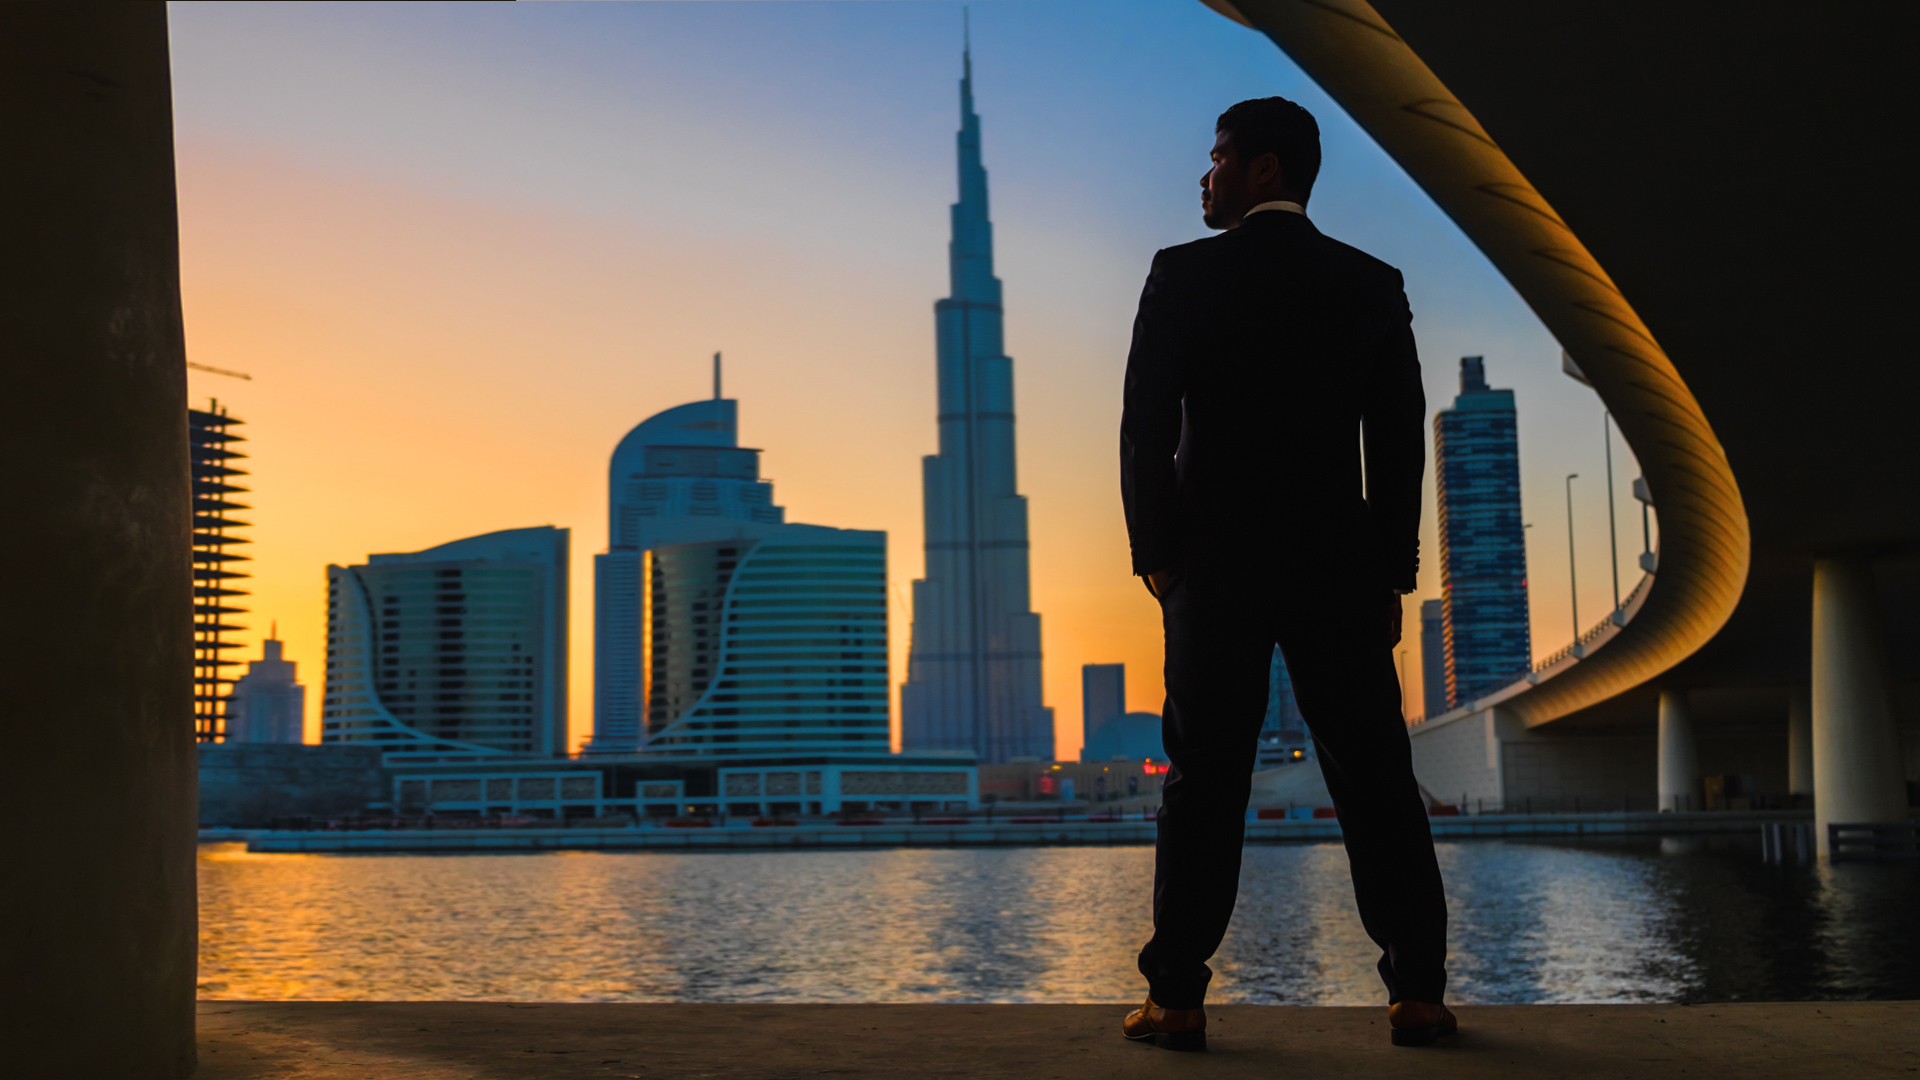 Ceasar silhouetted with Dubai skyline, natural light